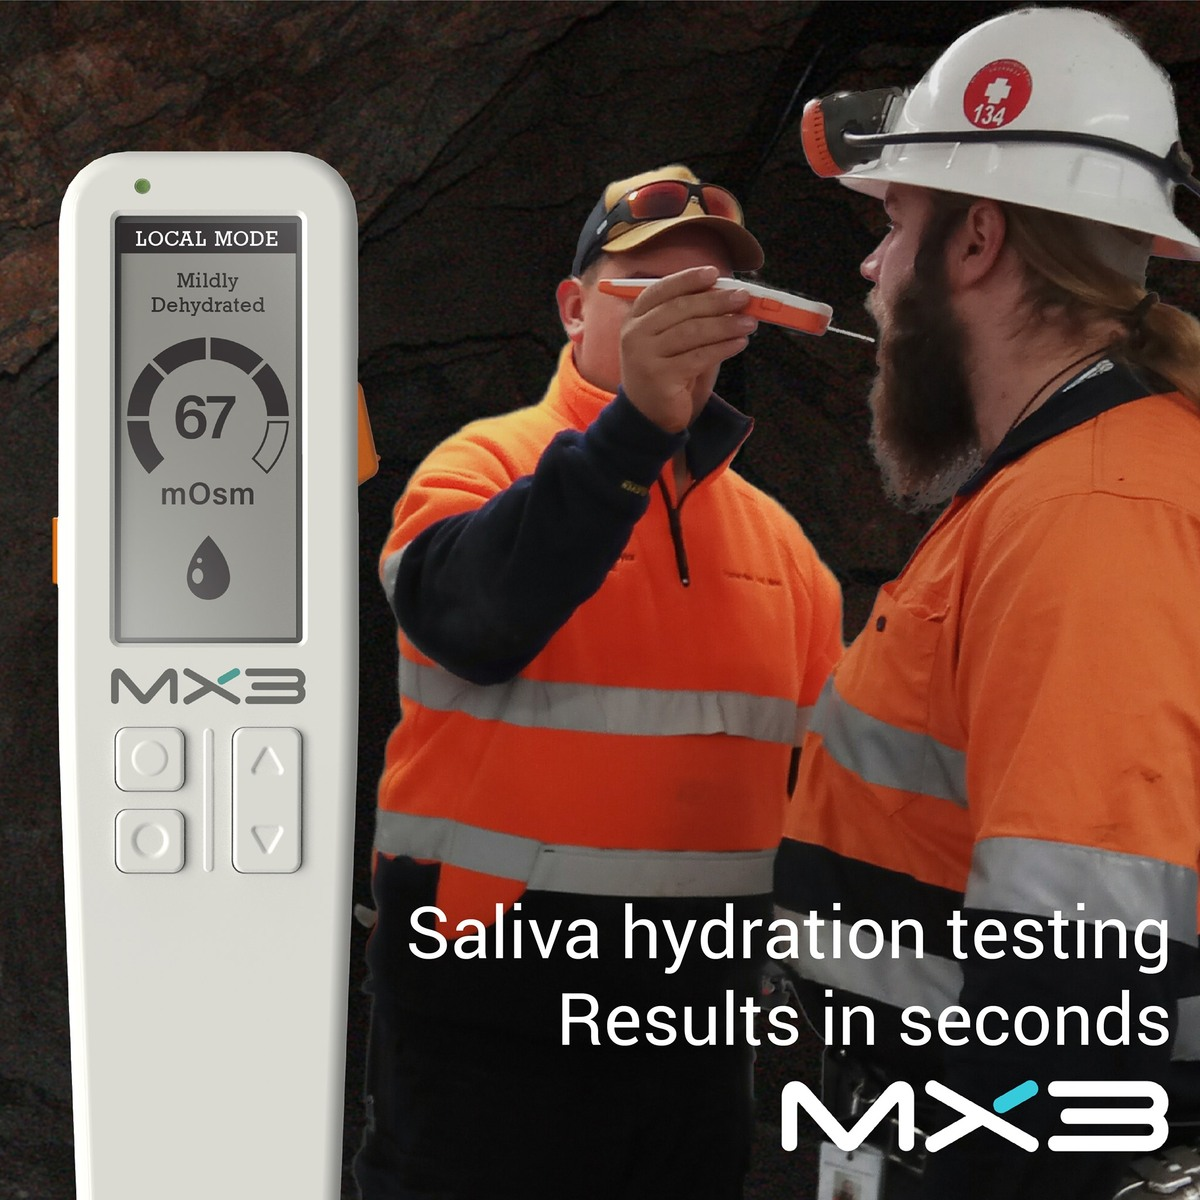 Saliva hydration testing. Results in seconds.